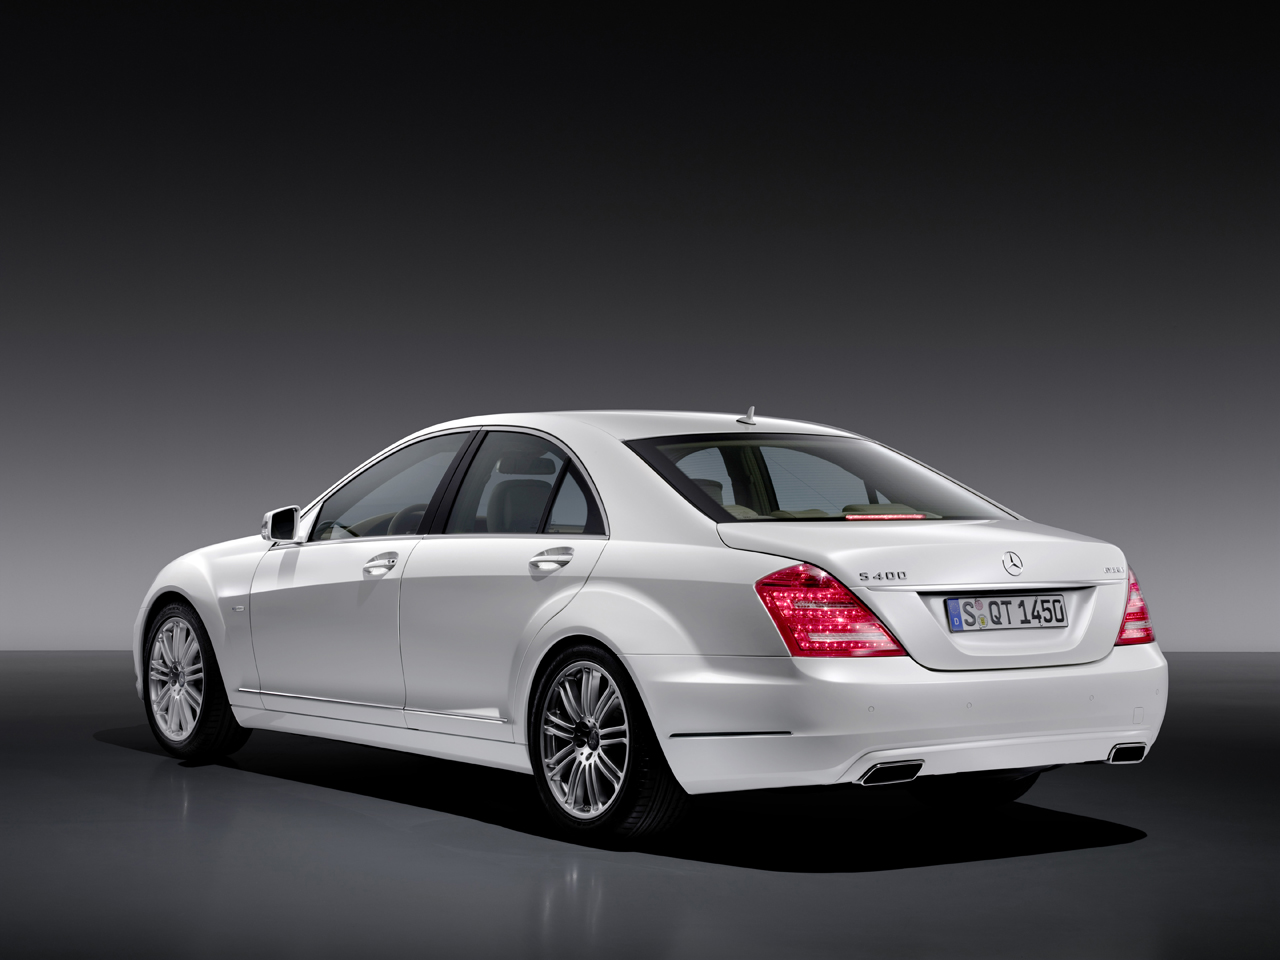 Mercedes benz s600 2010 for Mercedes benz s600 amg 2010